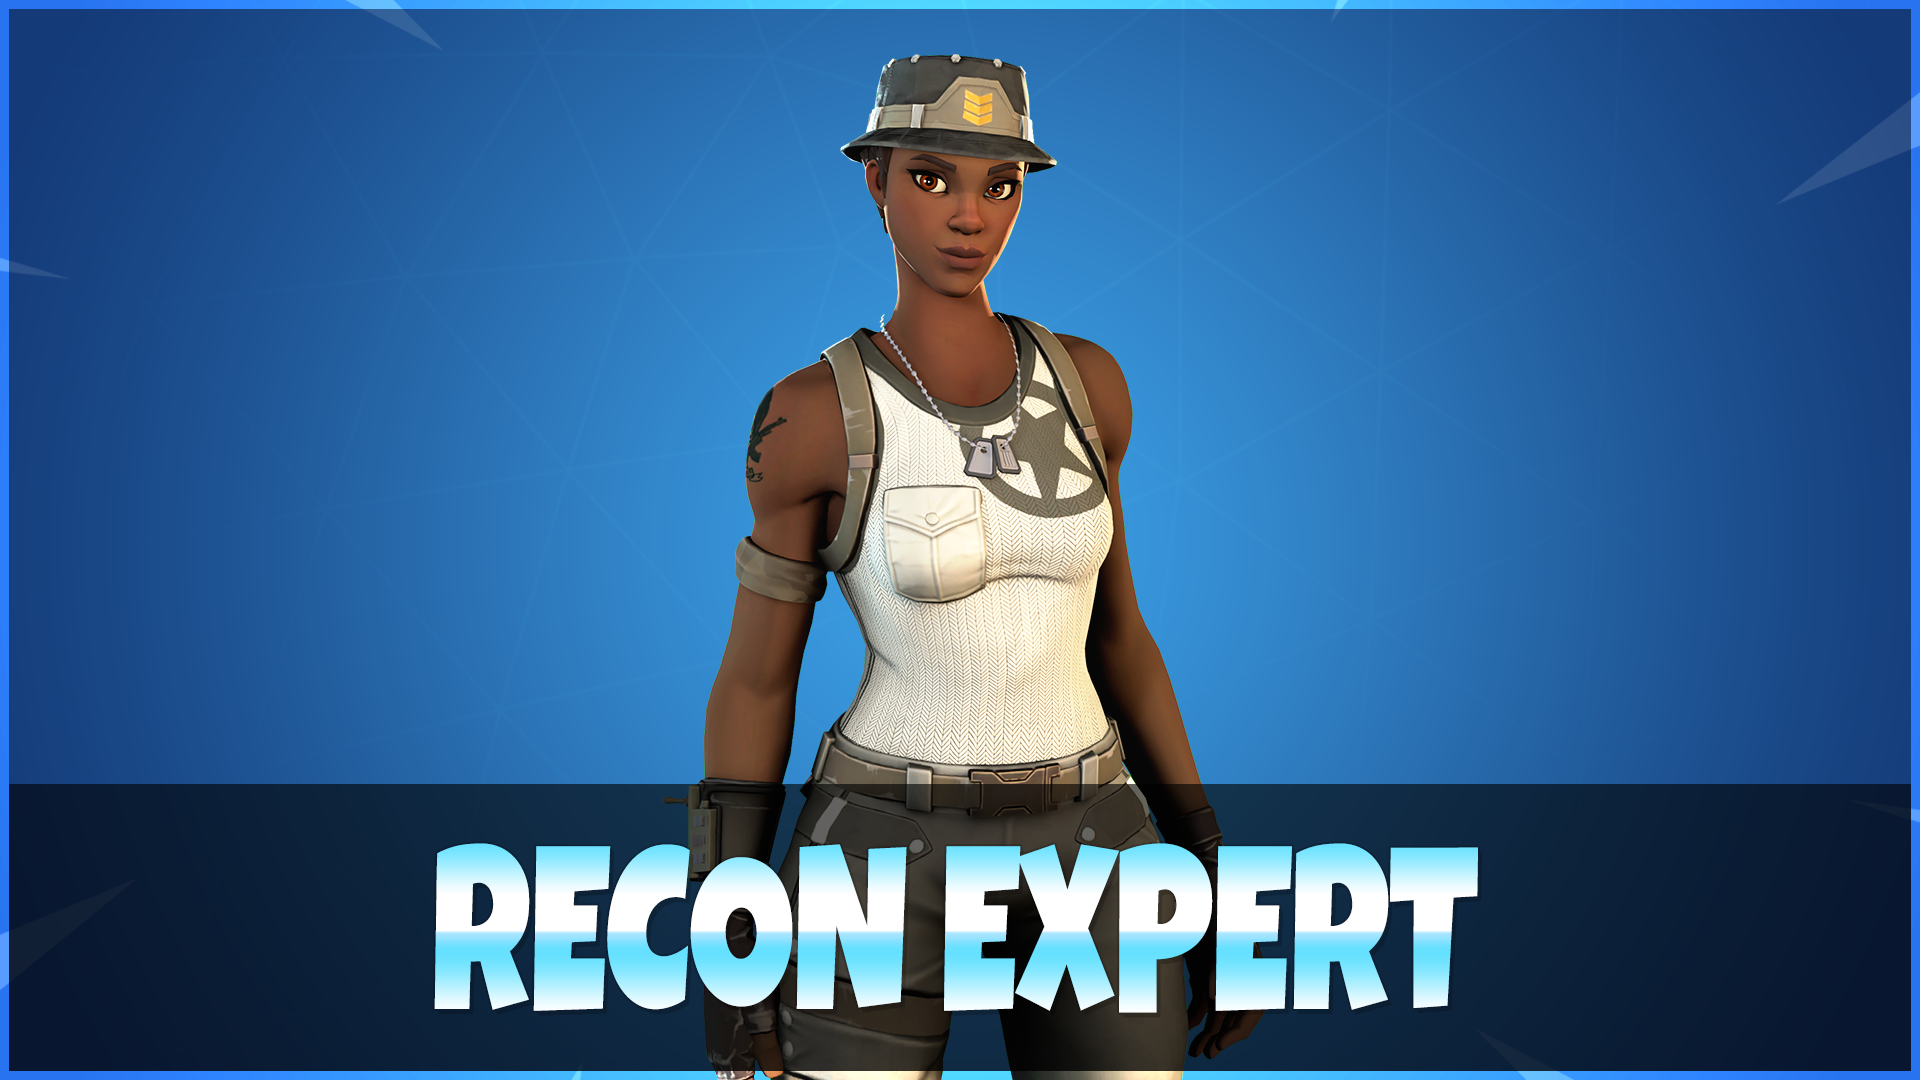 Fortnite Recon Expert Wallpapers - Top Free Fortnite Recon ...